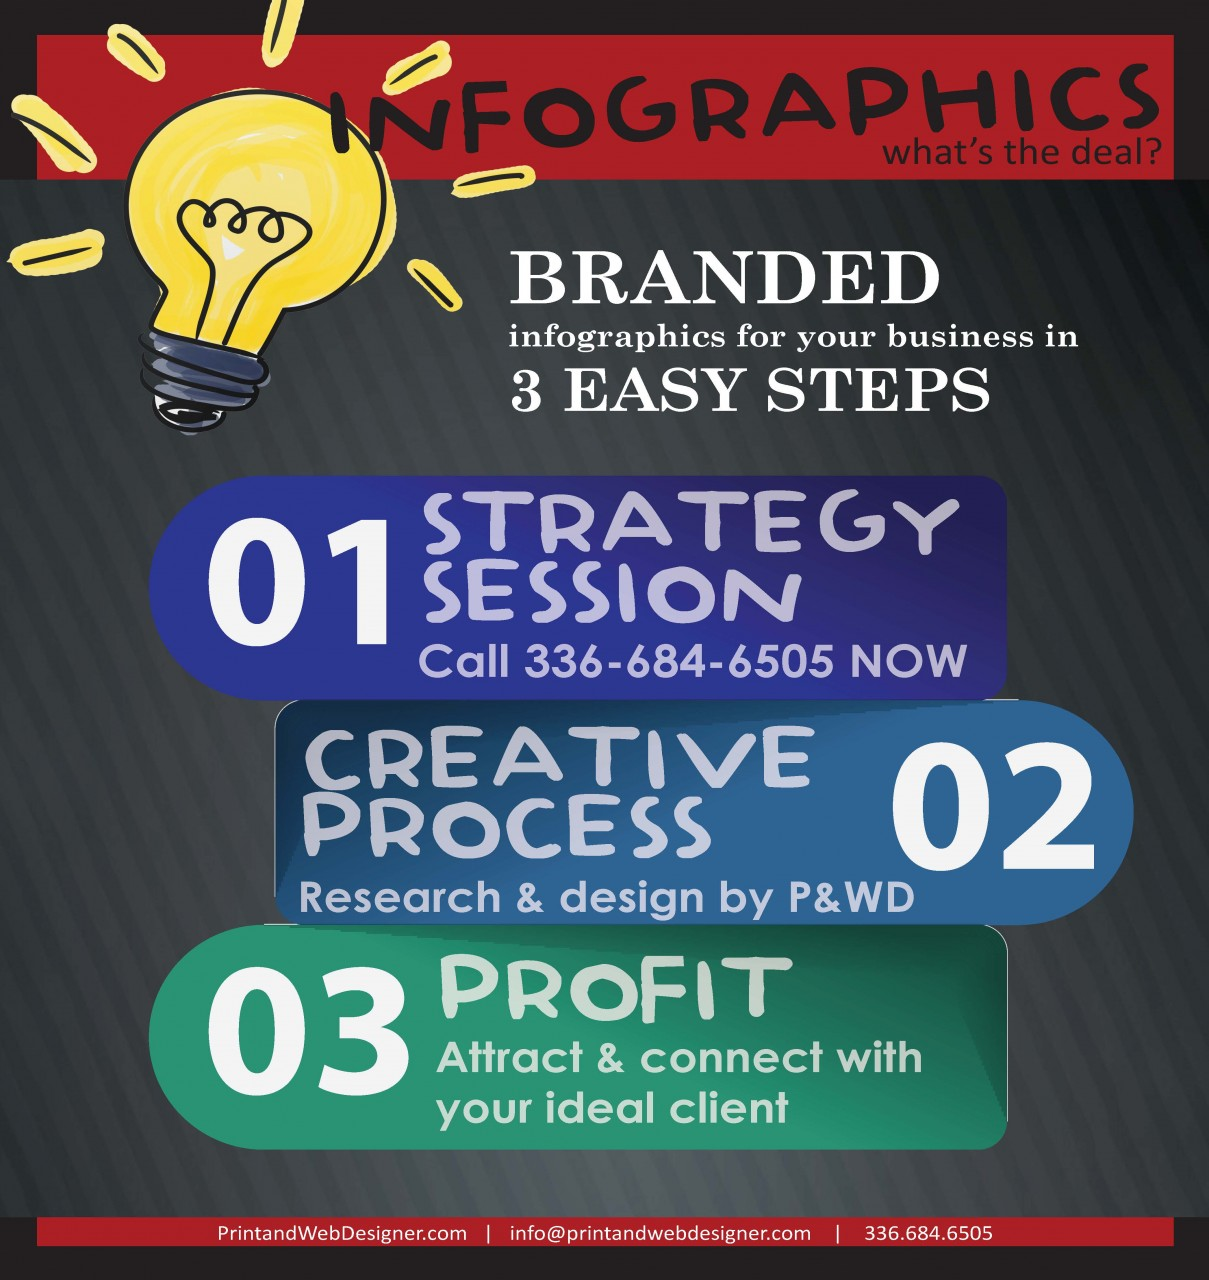 Infographics: You can share it on a variety of channels